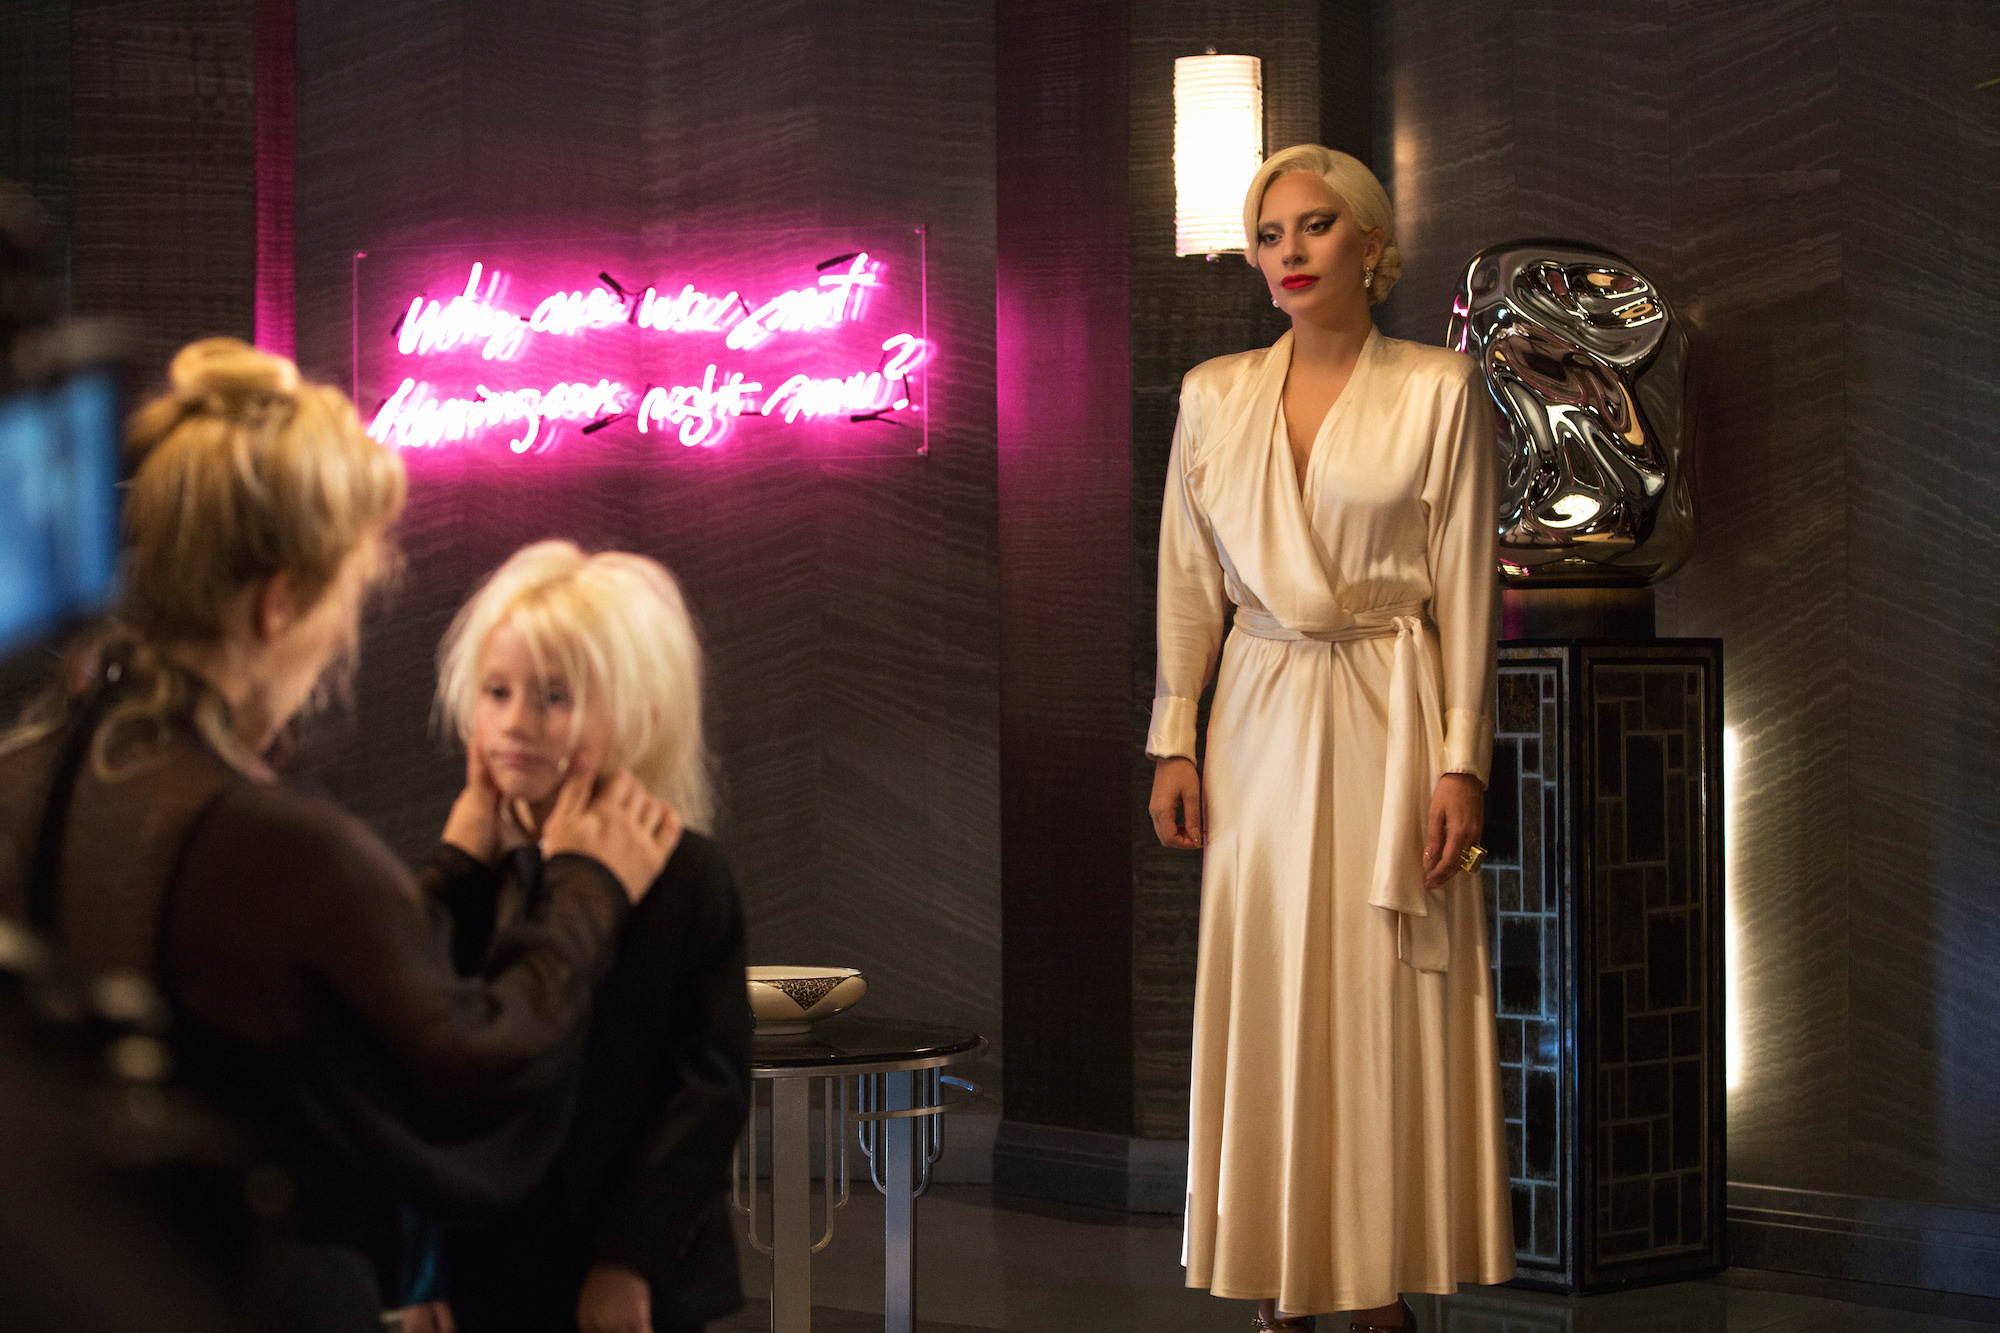 Lady Gaga as The Countess in 'American Horror Story: Hotel' Episode 5.